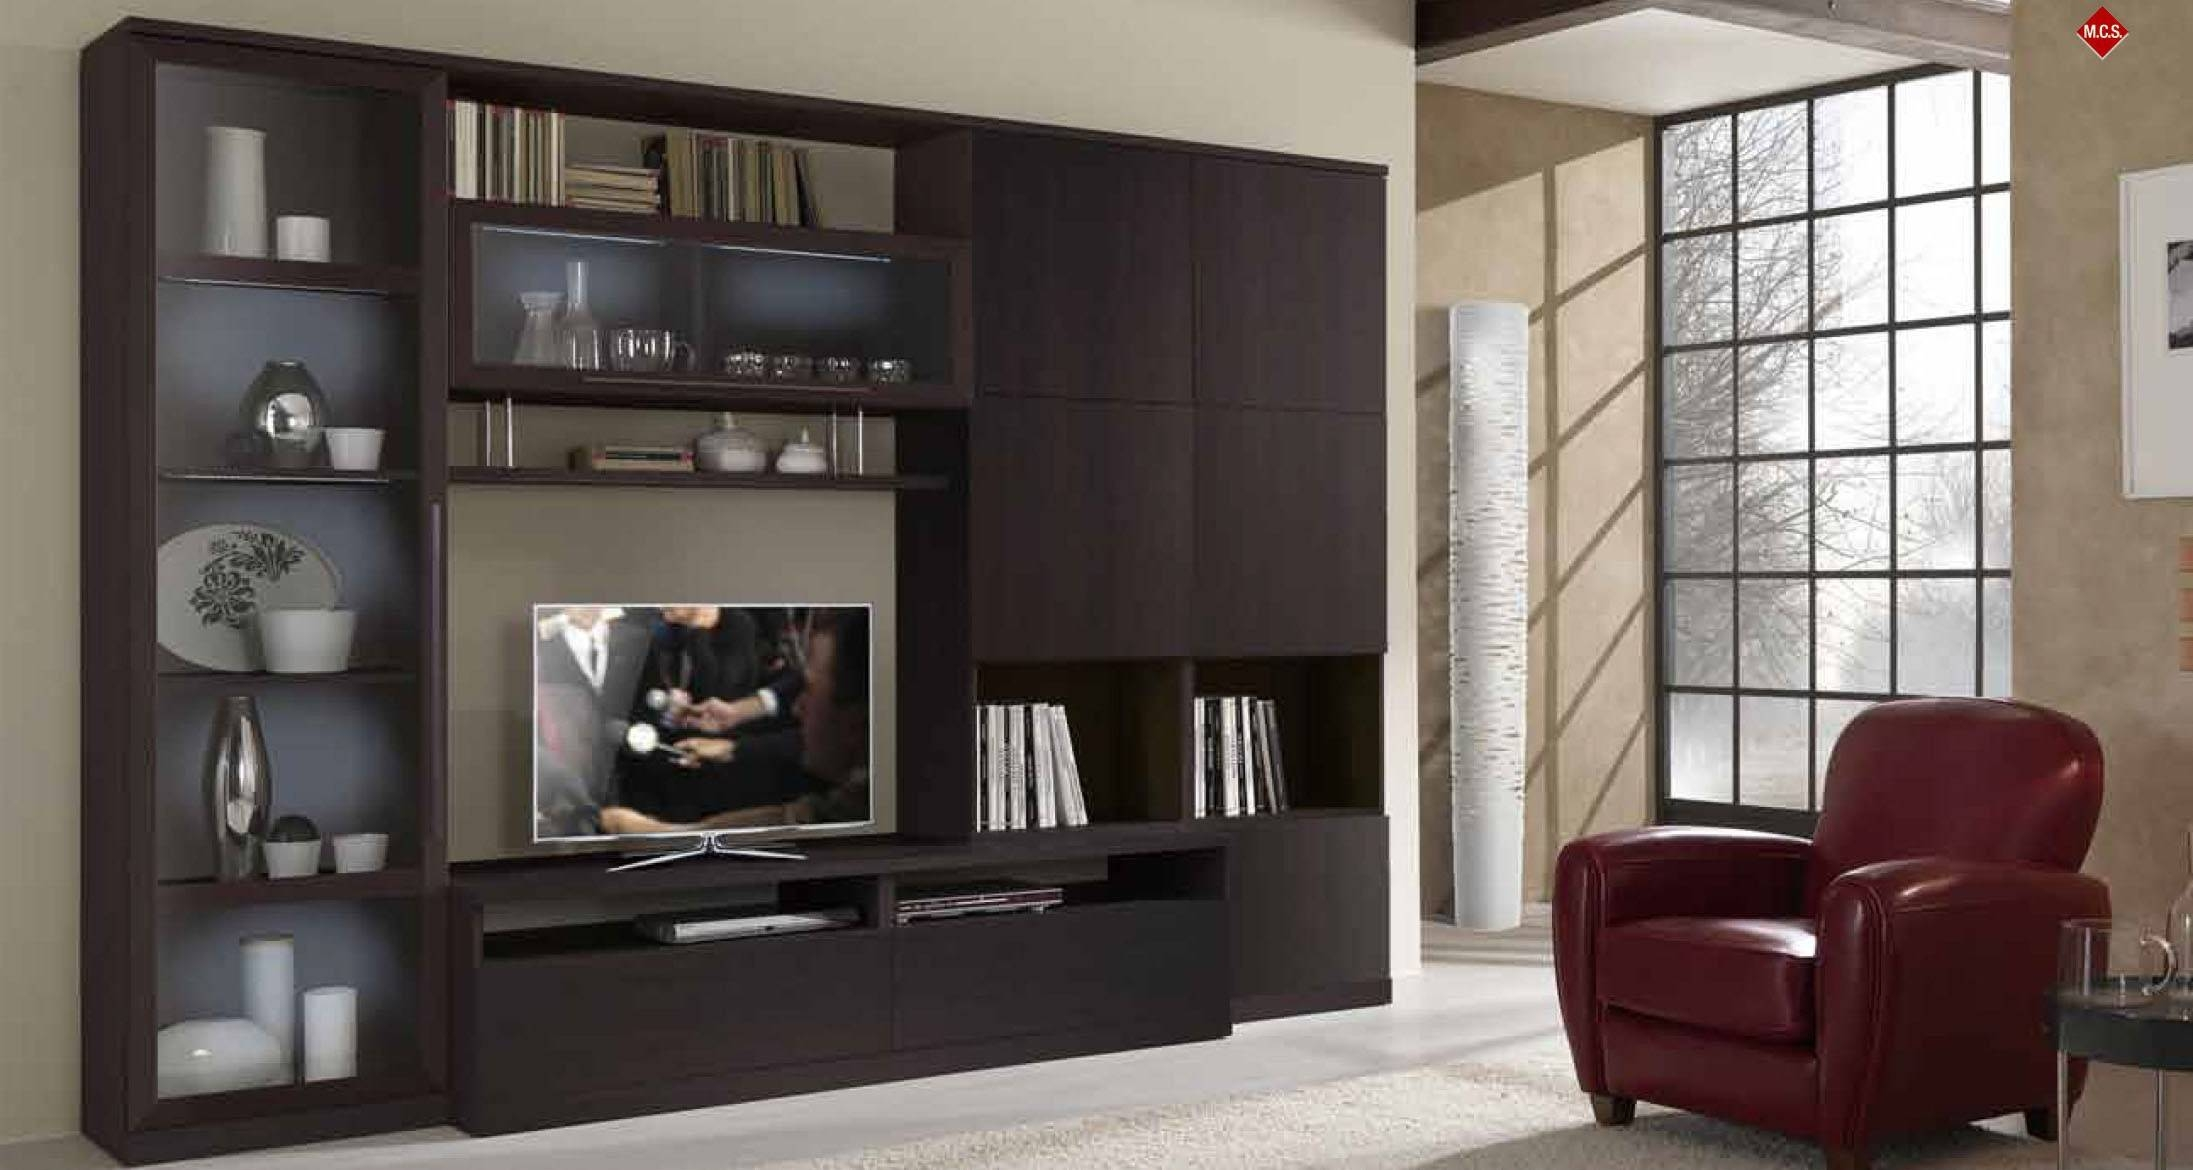 20 Modern Tv Unit Design Ideas For Bedroom & Living Room With Pictures in Living Room Tv Cabinets (Image 1 of 15)